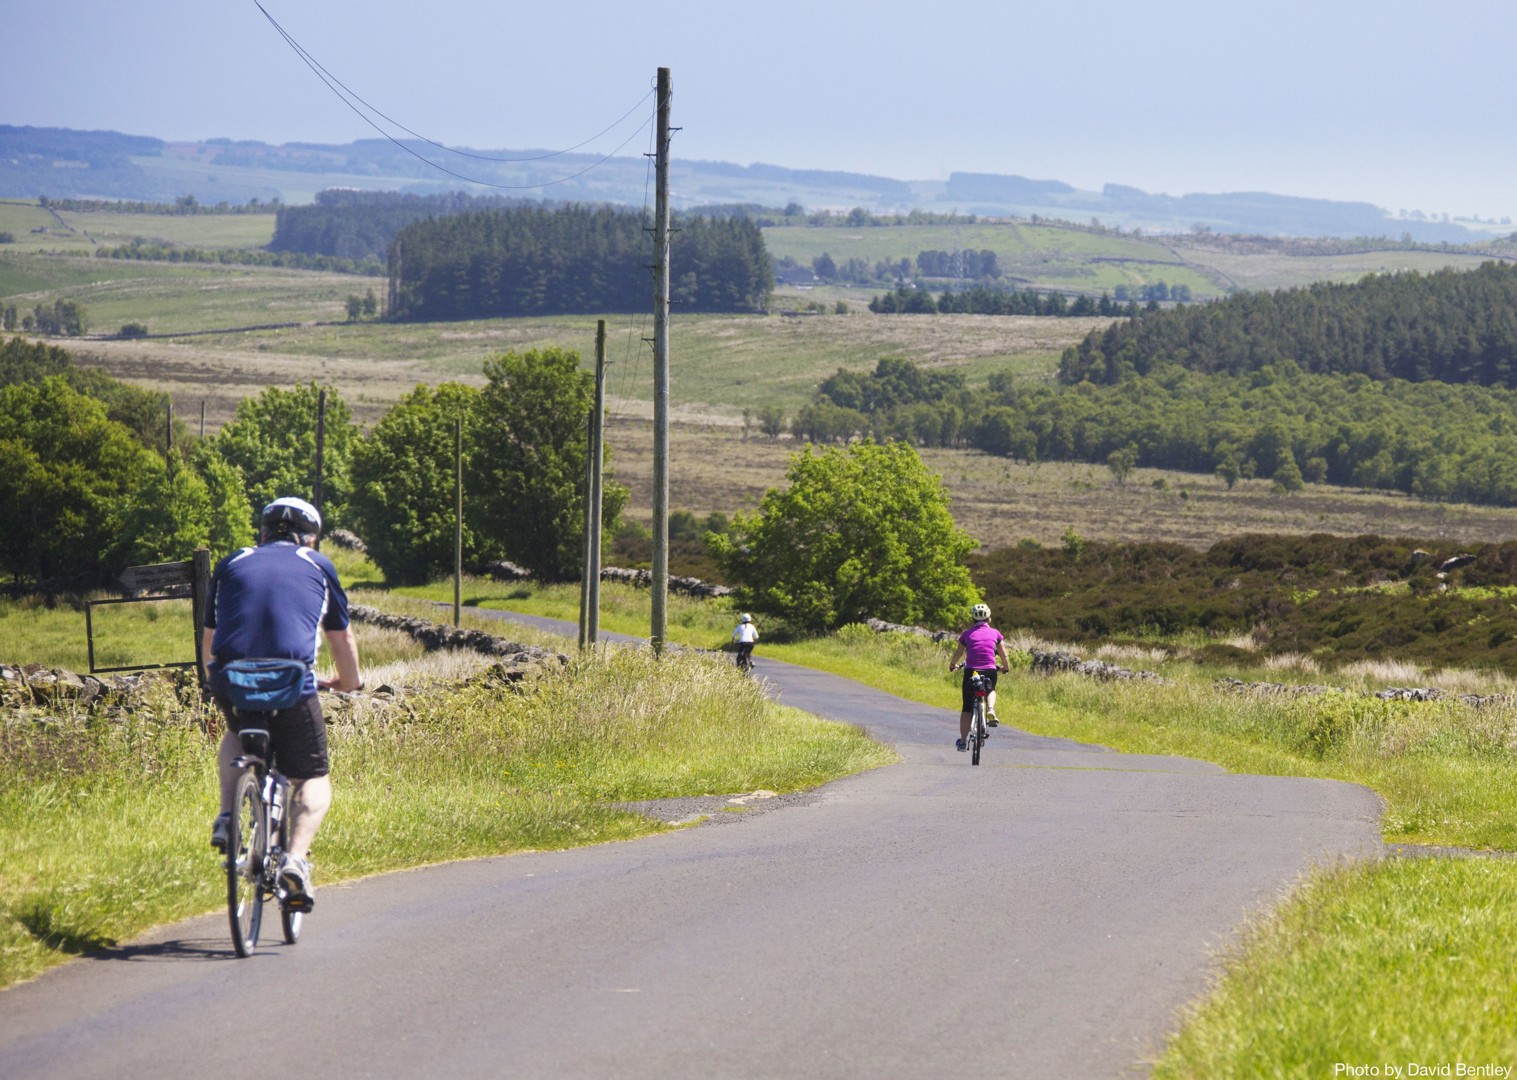 Self-Guided-Leisure-Cycling-Holiday-Hadrians-Cycleway-UK.jpg - UK - Hadrian's Cycleway - 4 Days Cycling - Self-Guided Leisure Cycling Holiday - Leisure Cycling